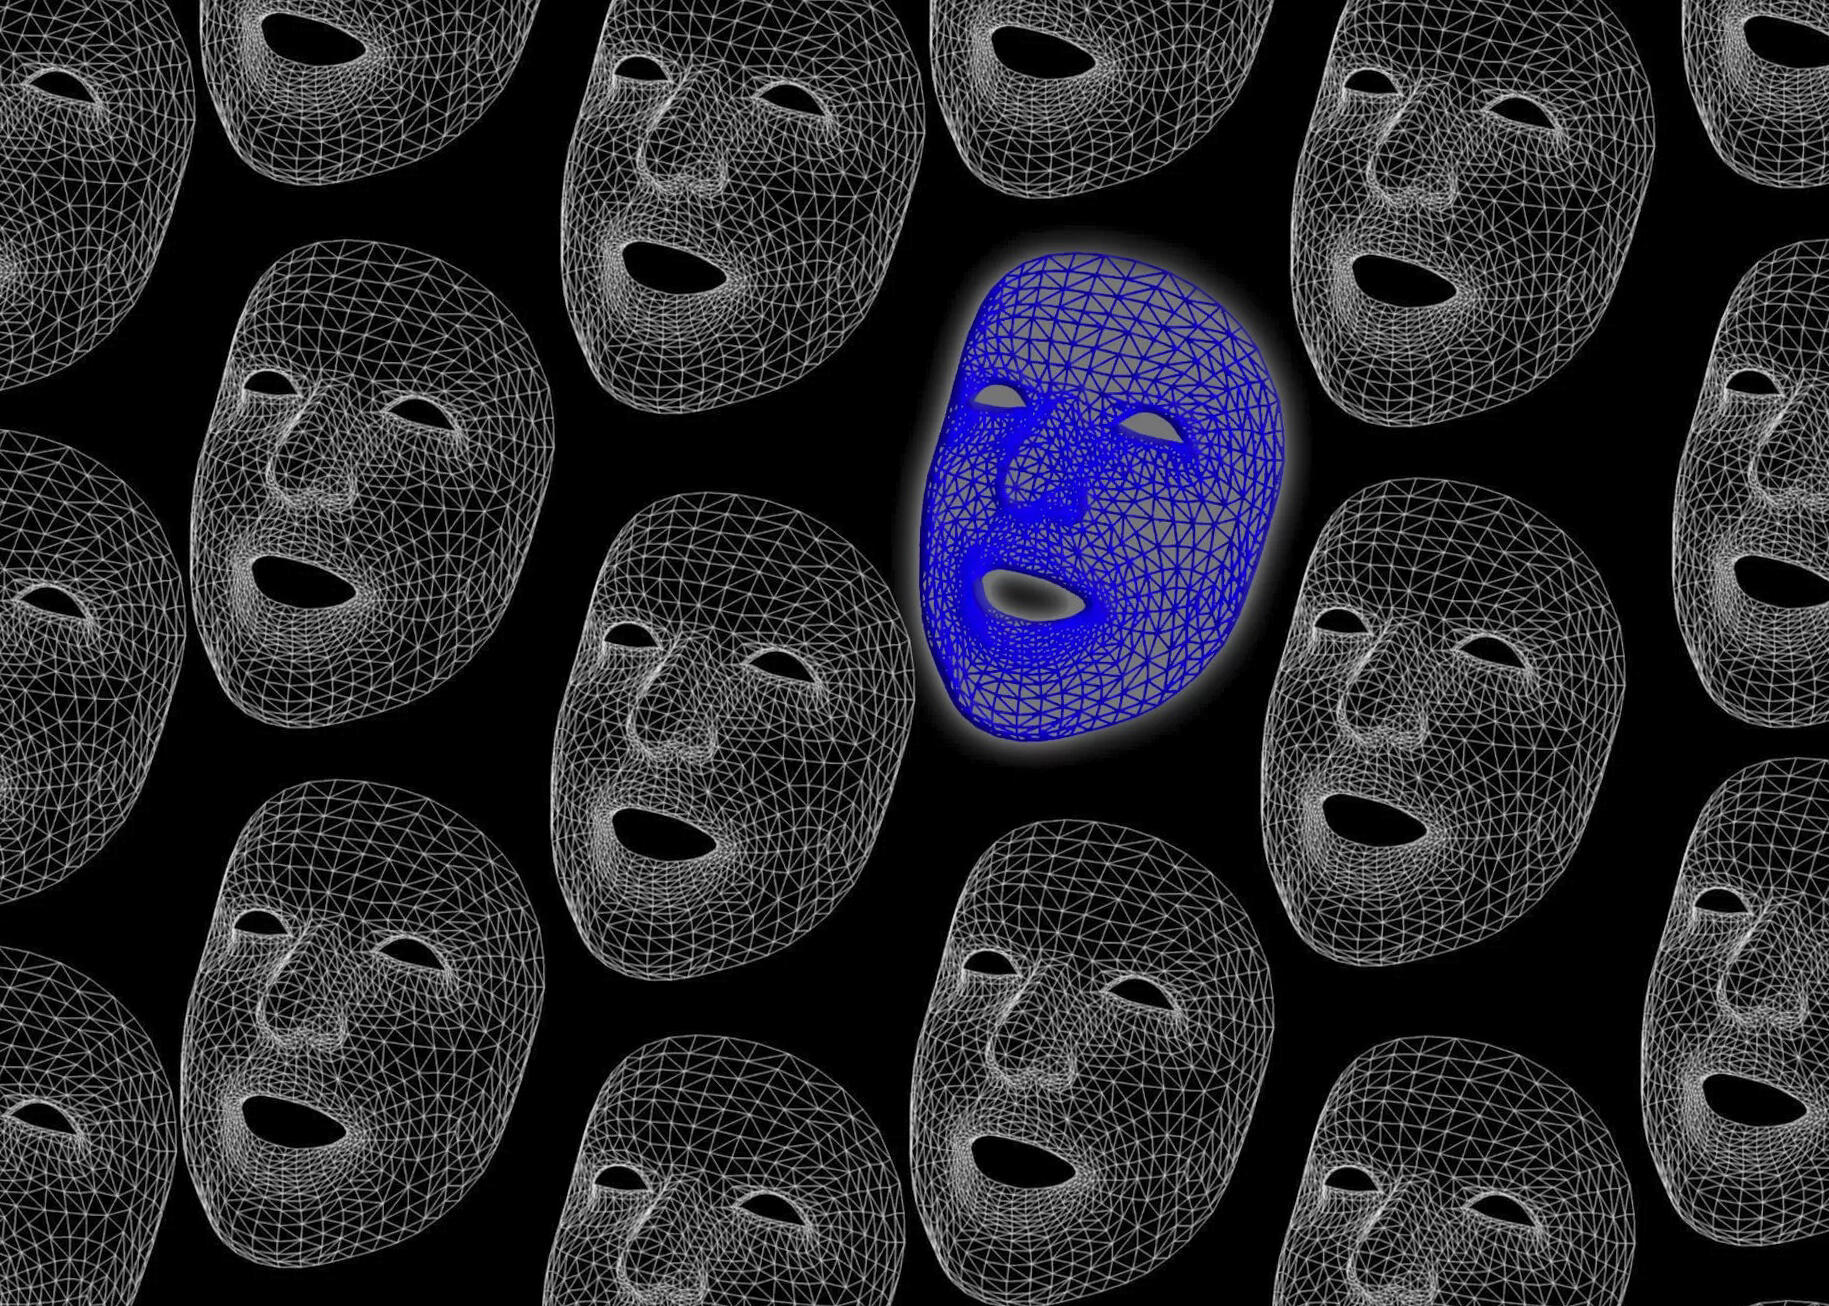 security-facial-recognition-contact-tracing